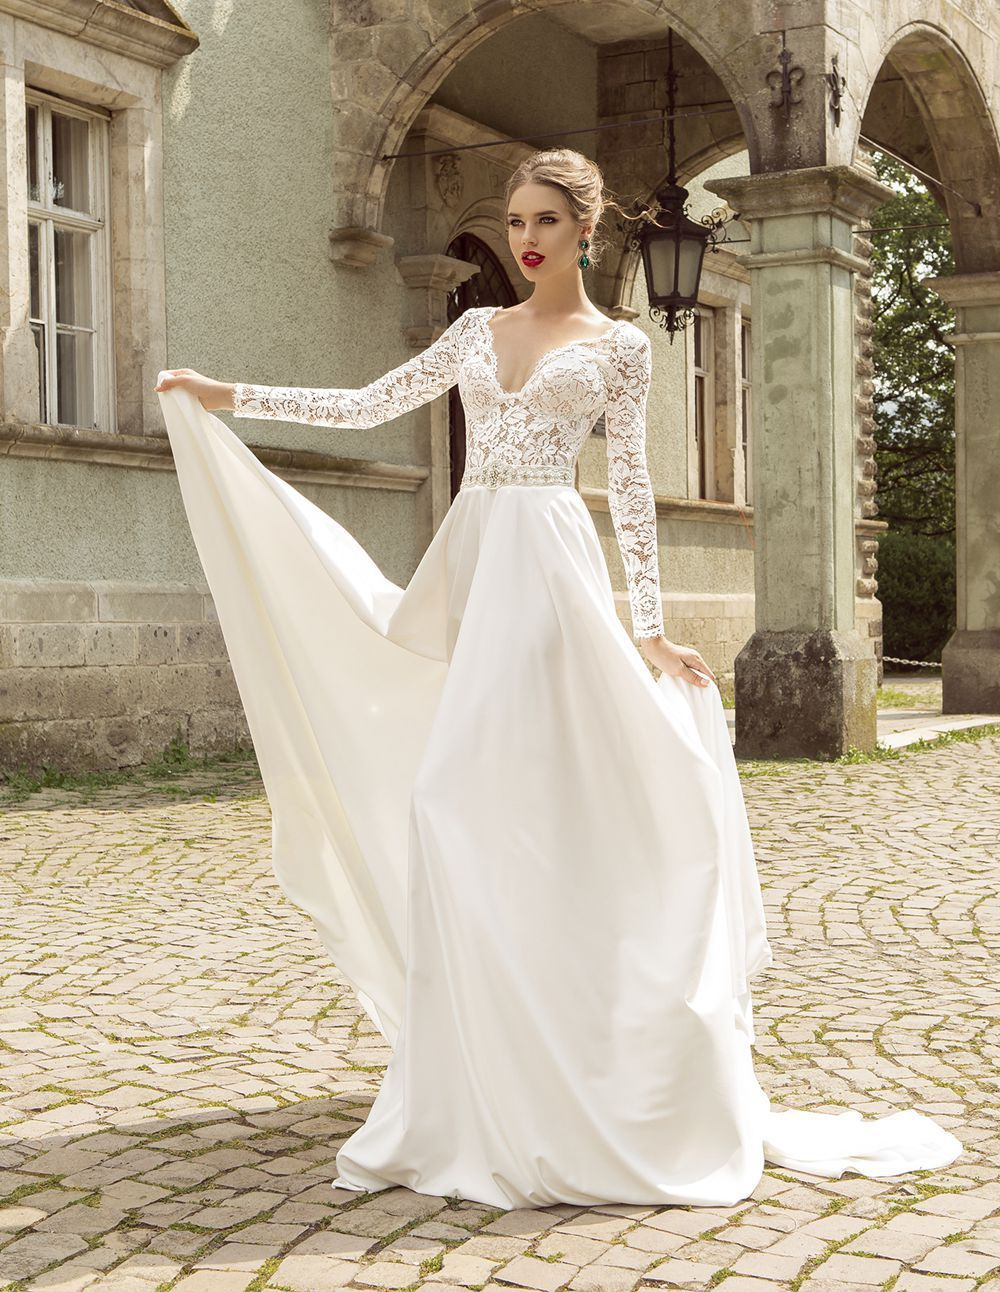 Long Sleeve Wedding Dress Featuring Delicate Crystal Beading on ...